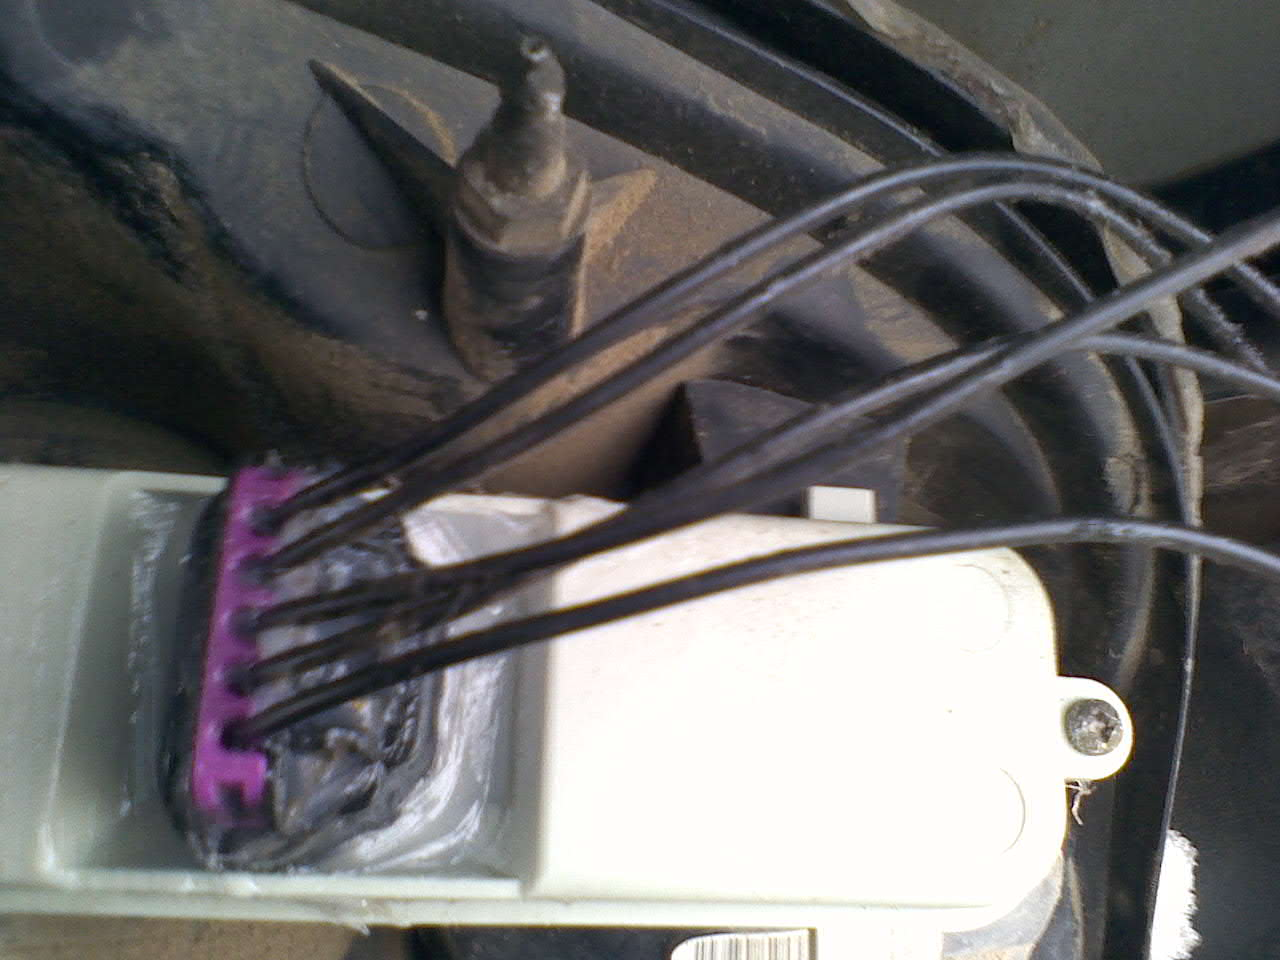 2012 01 20_181459_0120121112 i have a 2003 chevy trailblazer i need to know the wiring colors 2003 chevy trailblazer tail light wiring harness at edmiracle.co